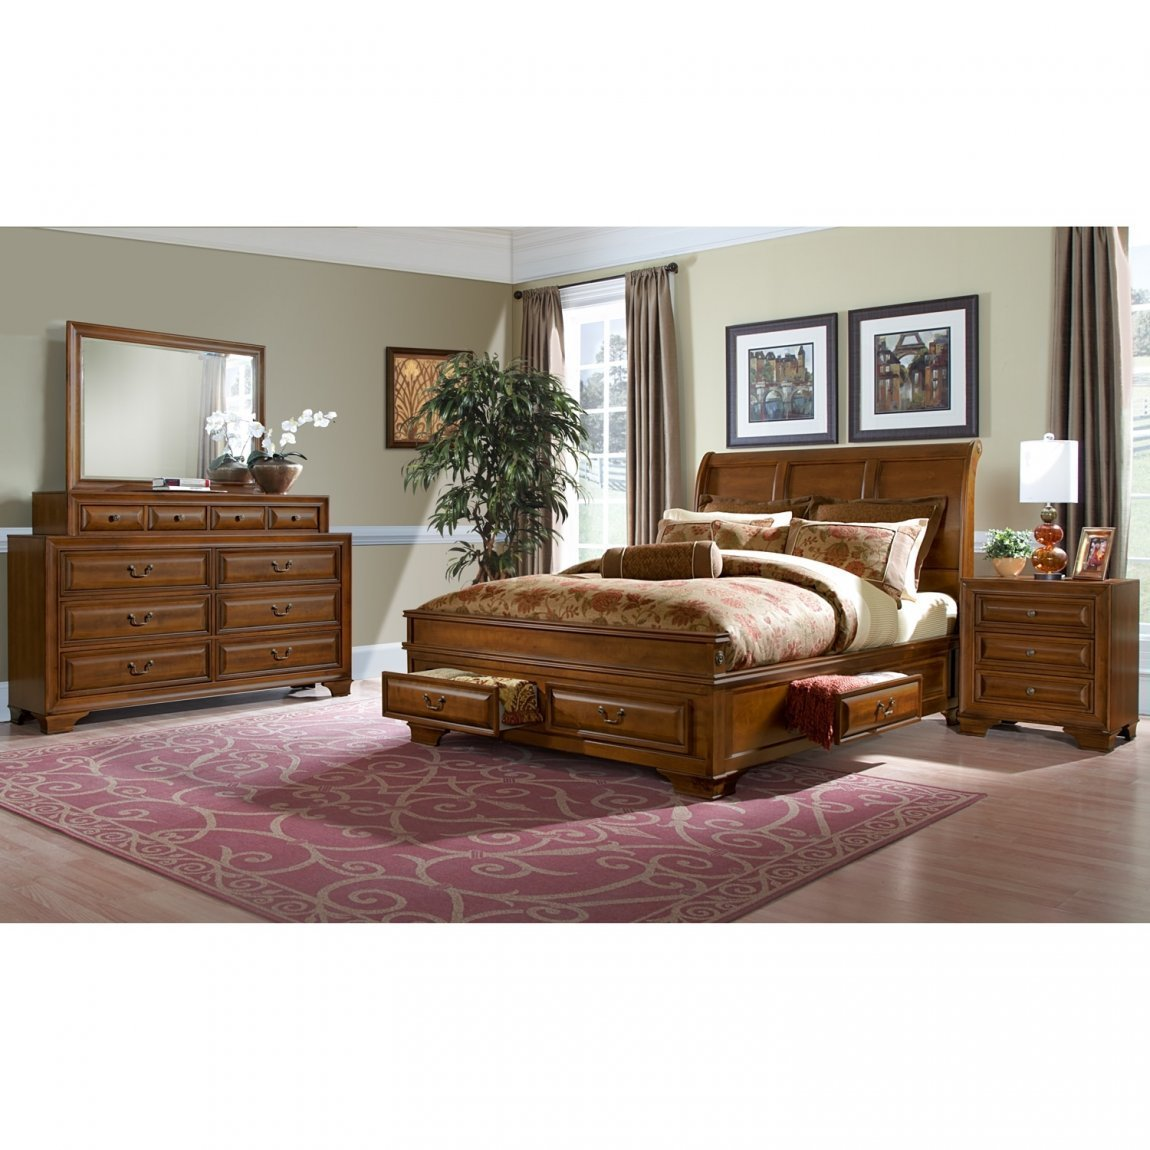 Best 6 Piece King Bedroom Set Cheap Furniture Sets Under 300 Bedroom Sets Piece King Set Adsensr Com With Pictures